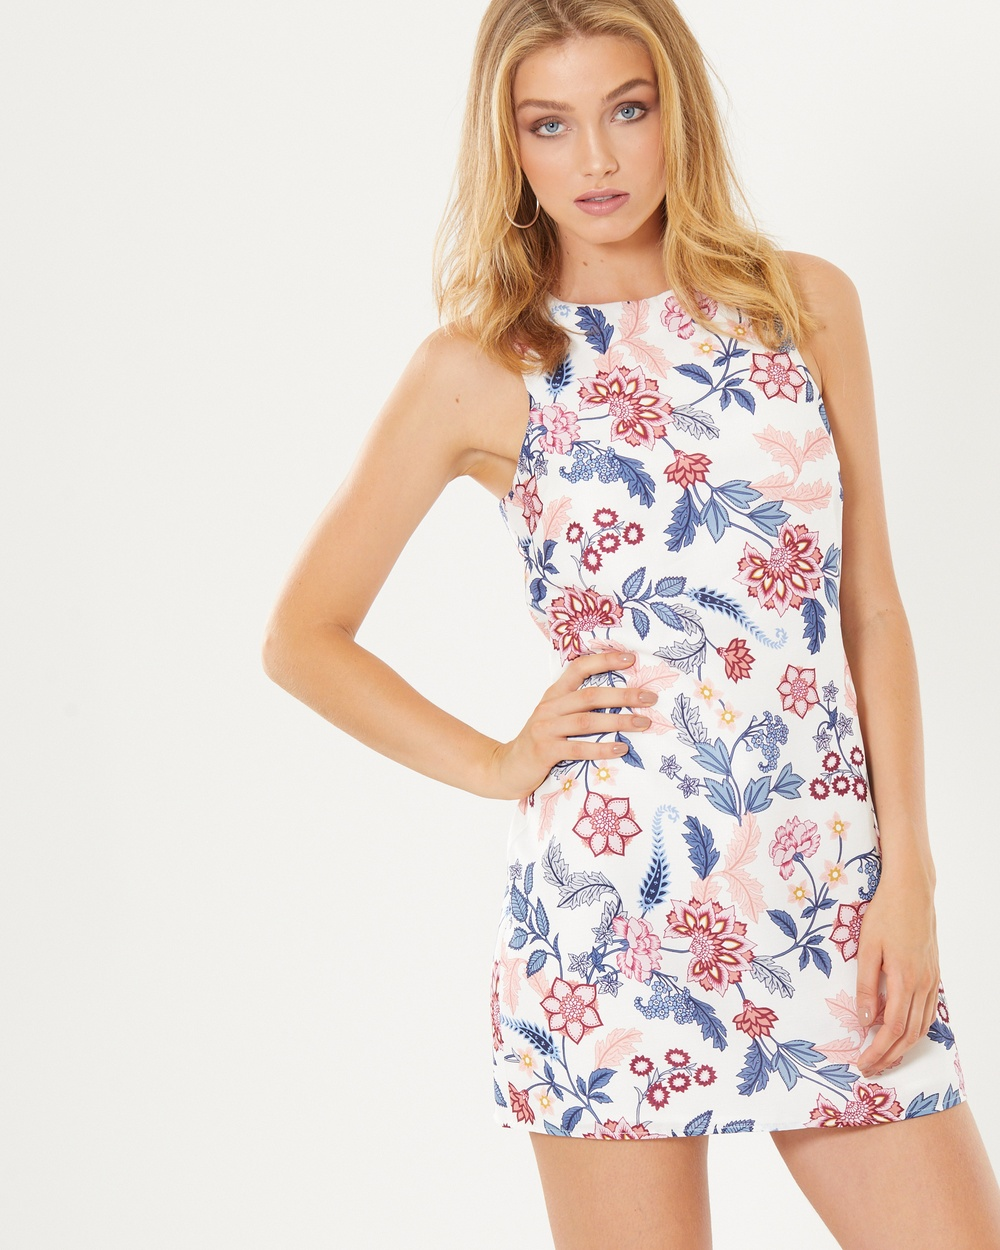 Photo of Tussah Multi Kiki Shift Mini Dress - beautiful dress from Tussah online